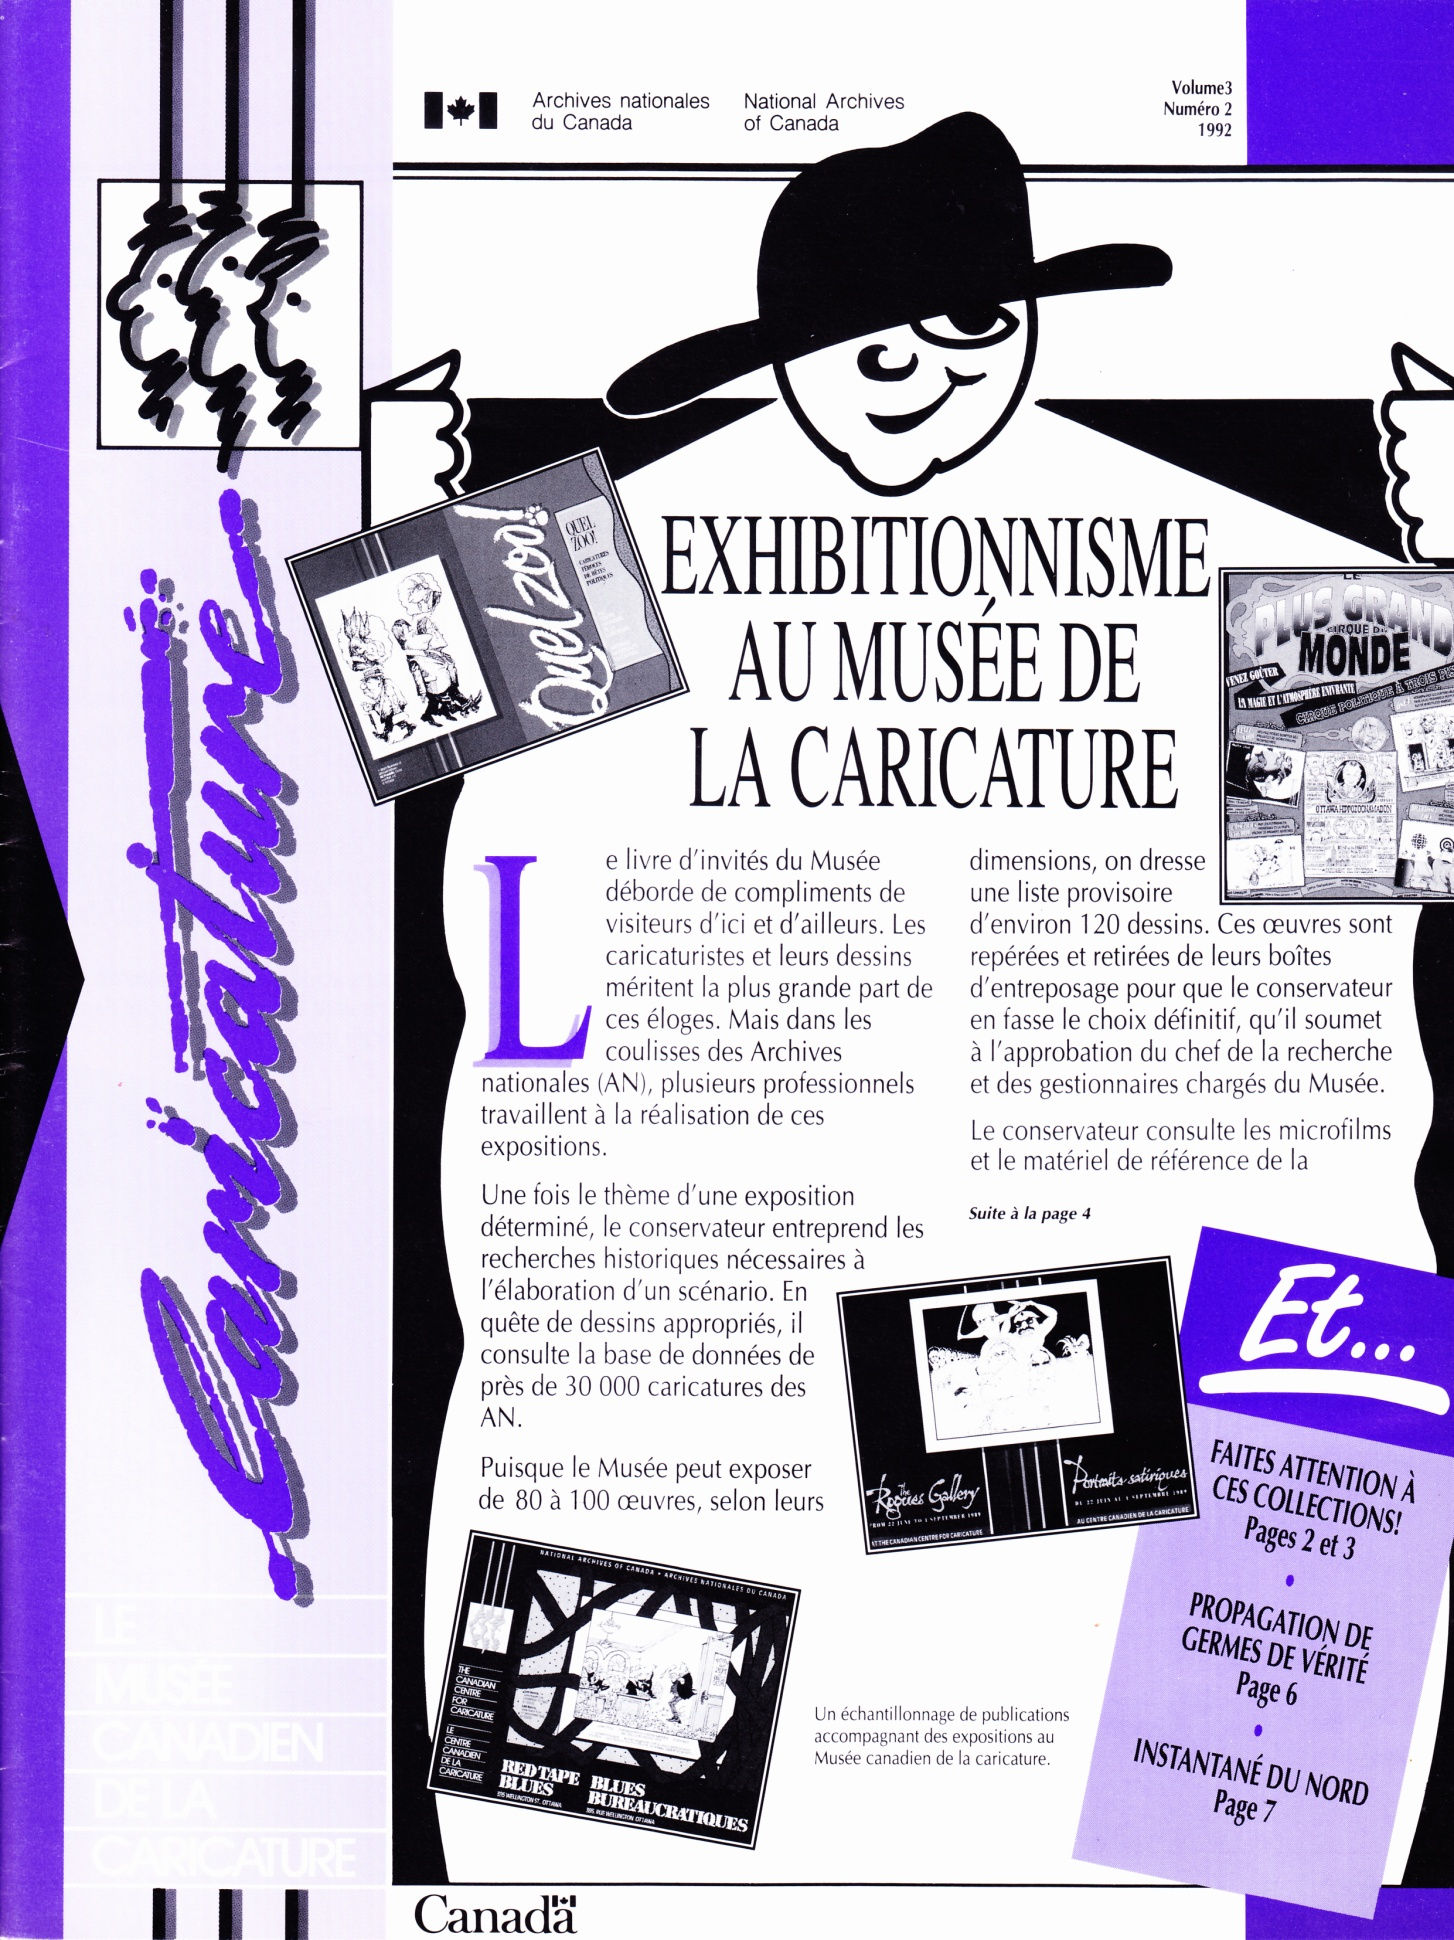 C:\Users\Robert\Documents\CARTOONING ILLUSTRATION ANIMATION\IMAGE COVER PERIODICAL\CANADIAN MUSEUM OF CARICATURE_0003.jpg